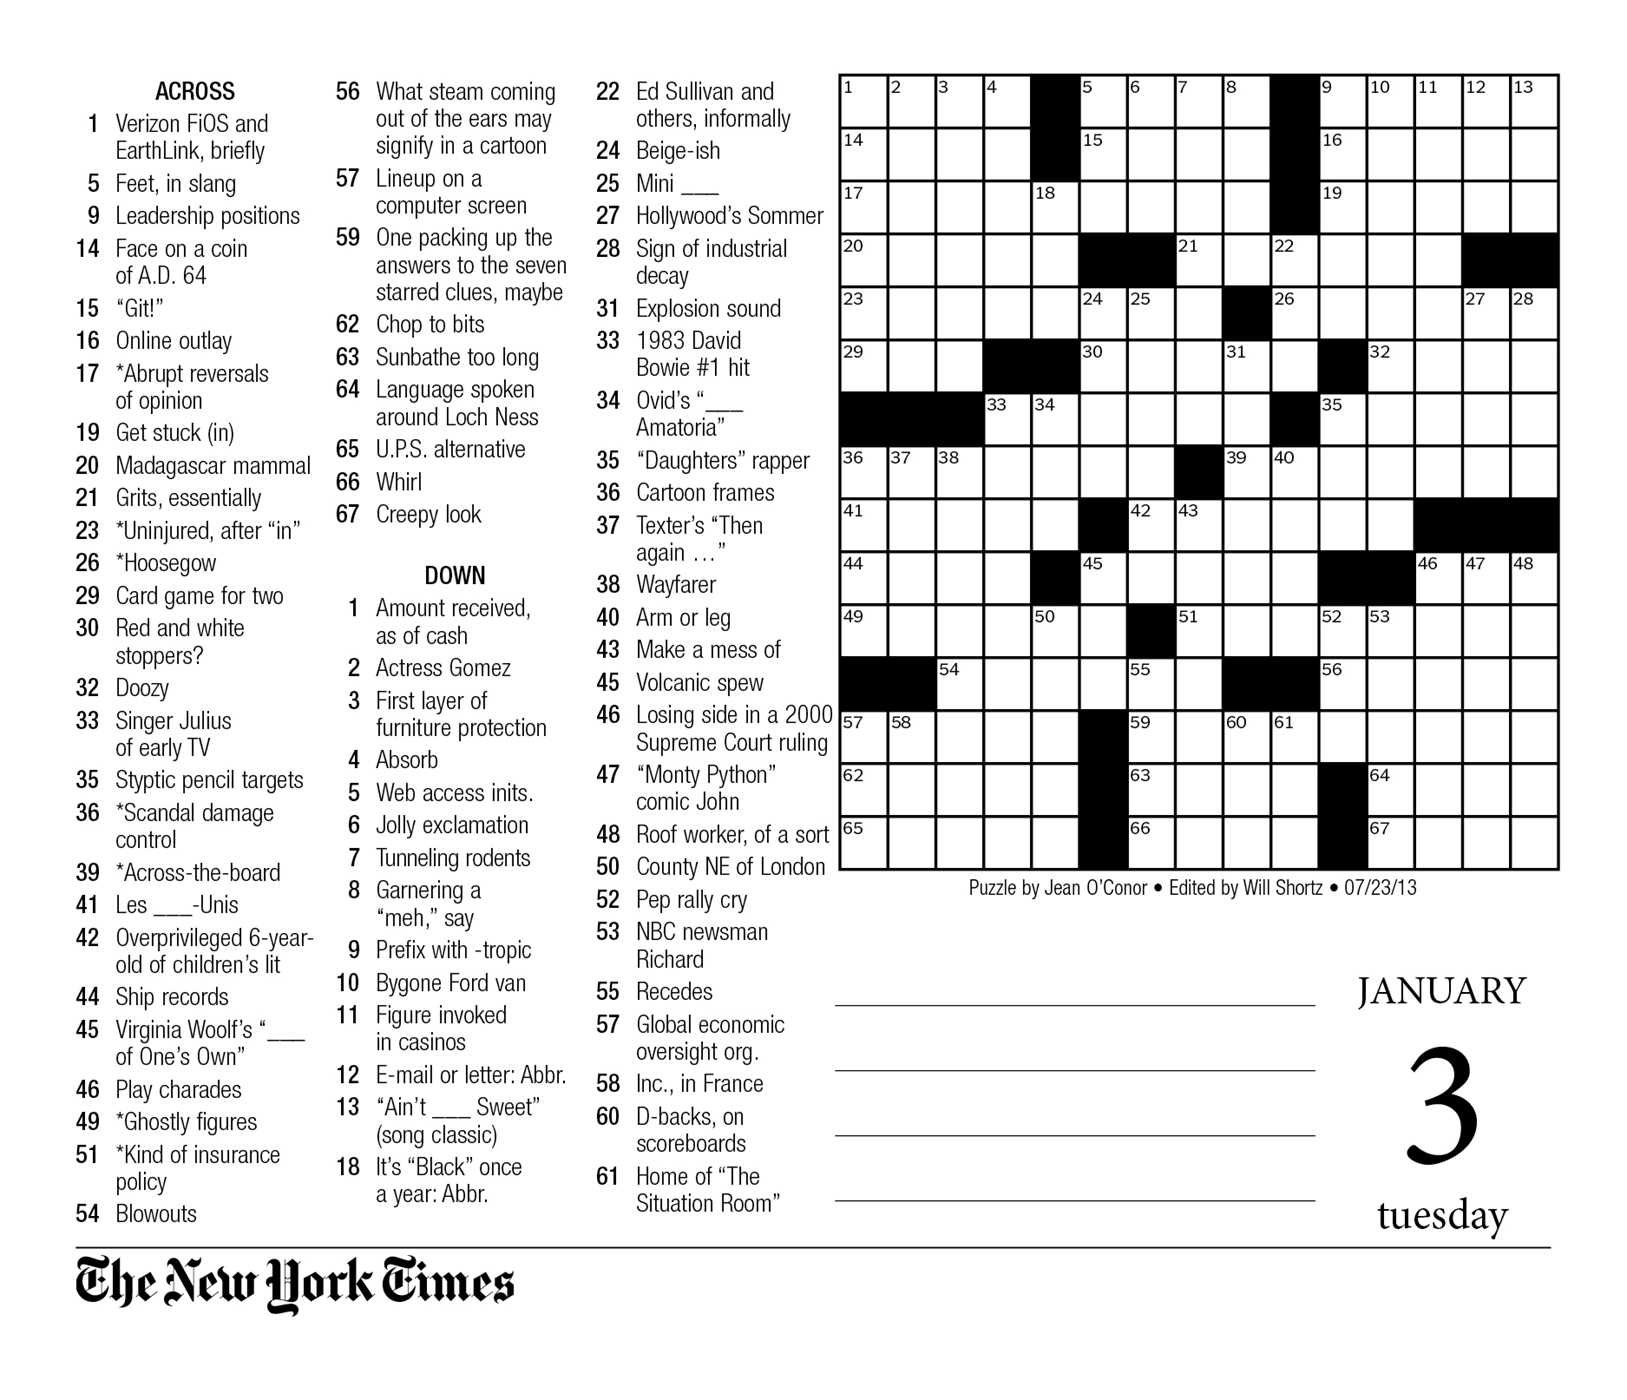 Gorgeous image within la times printable crossword puzzle